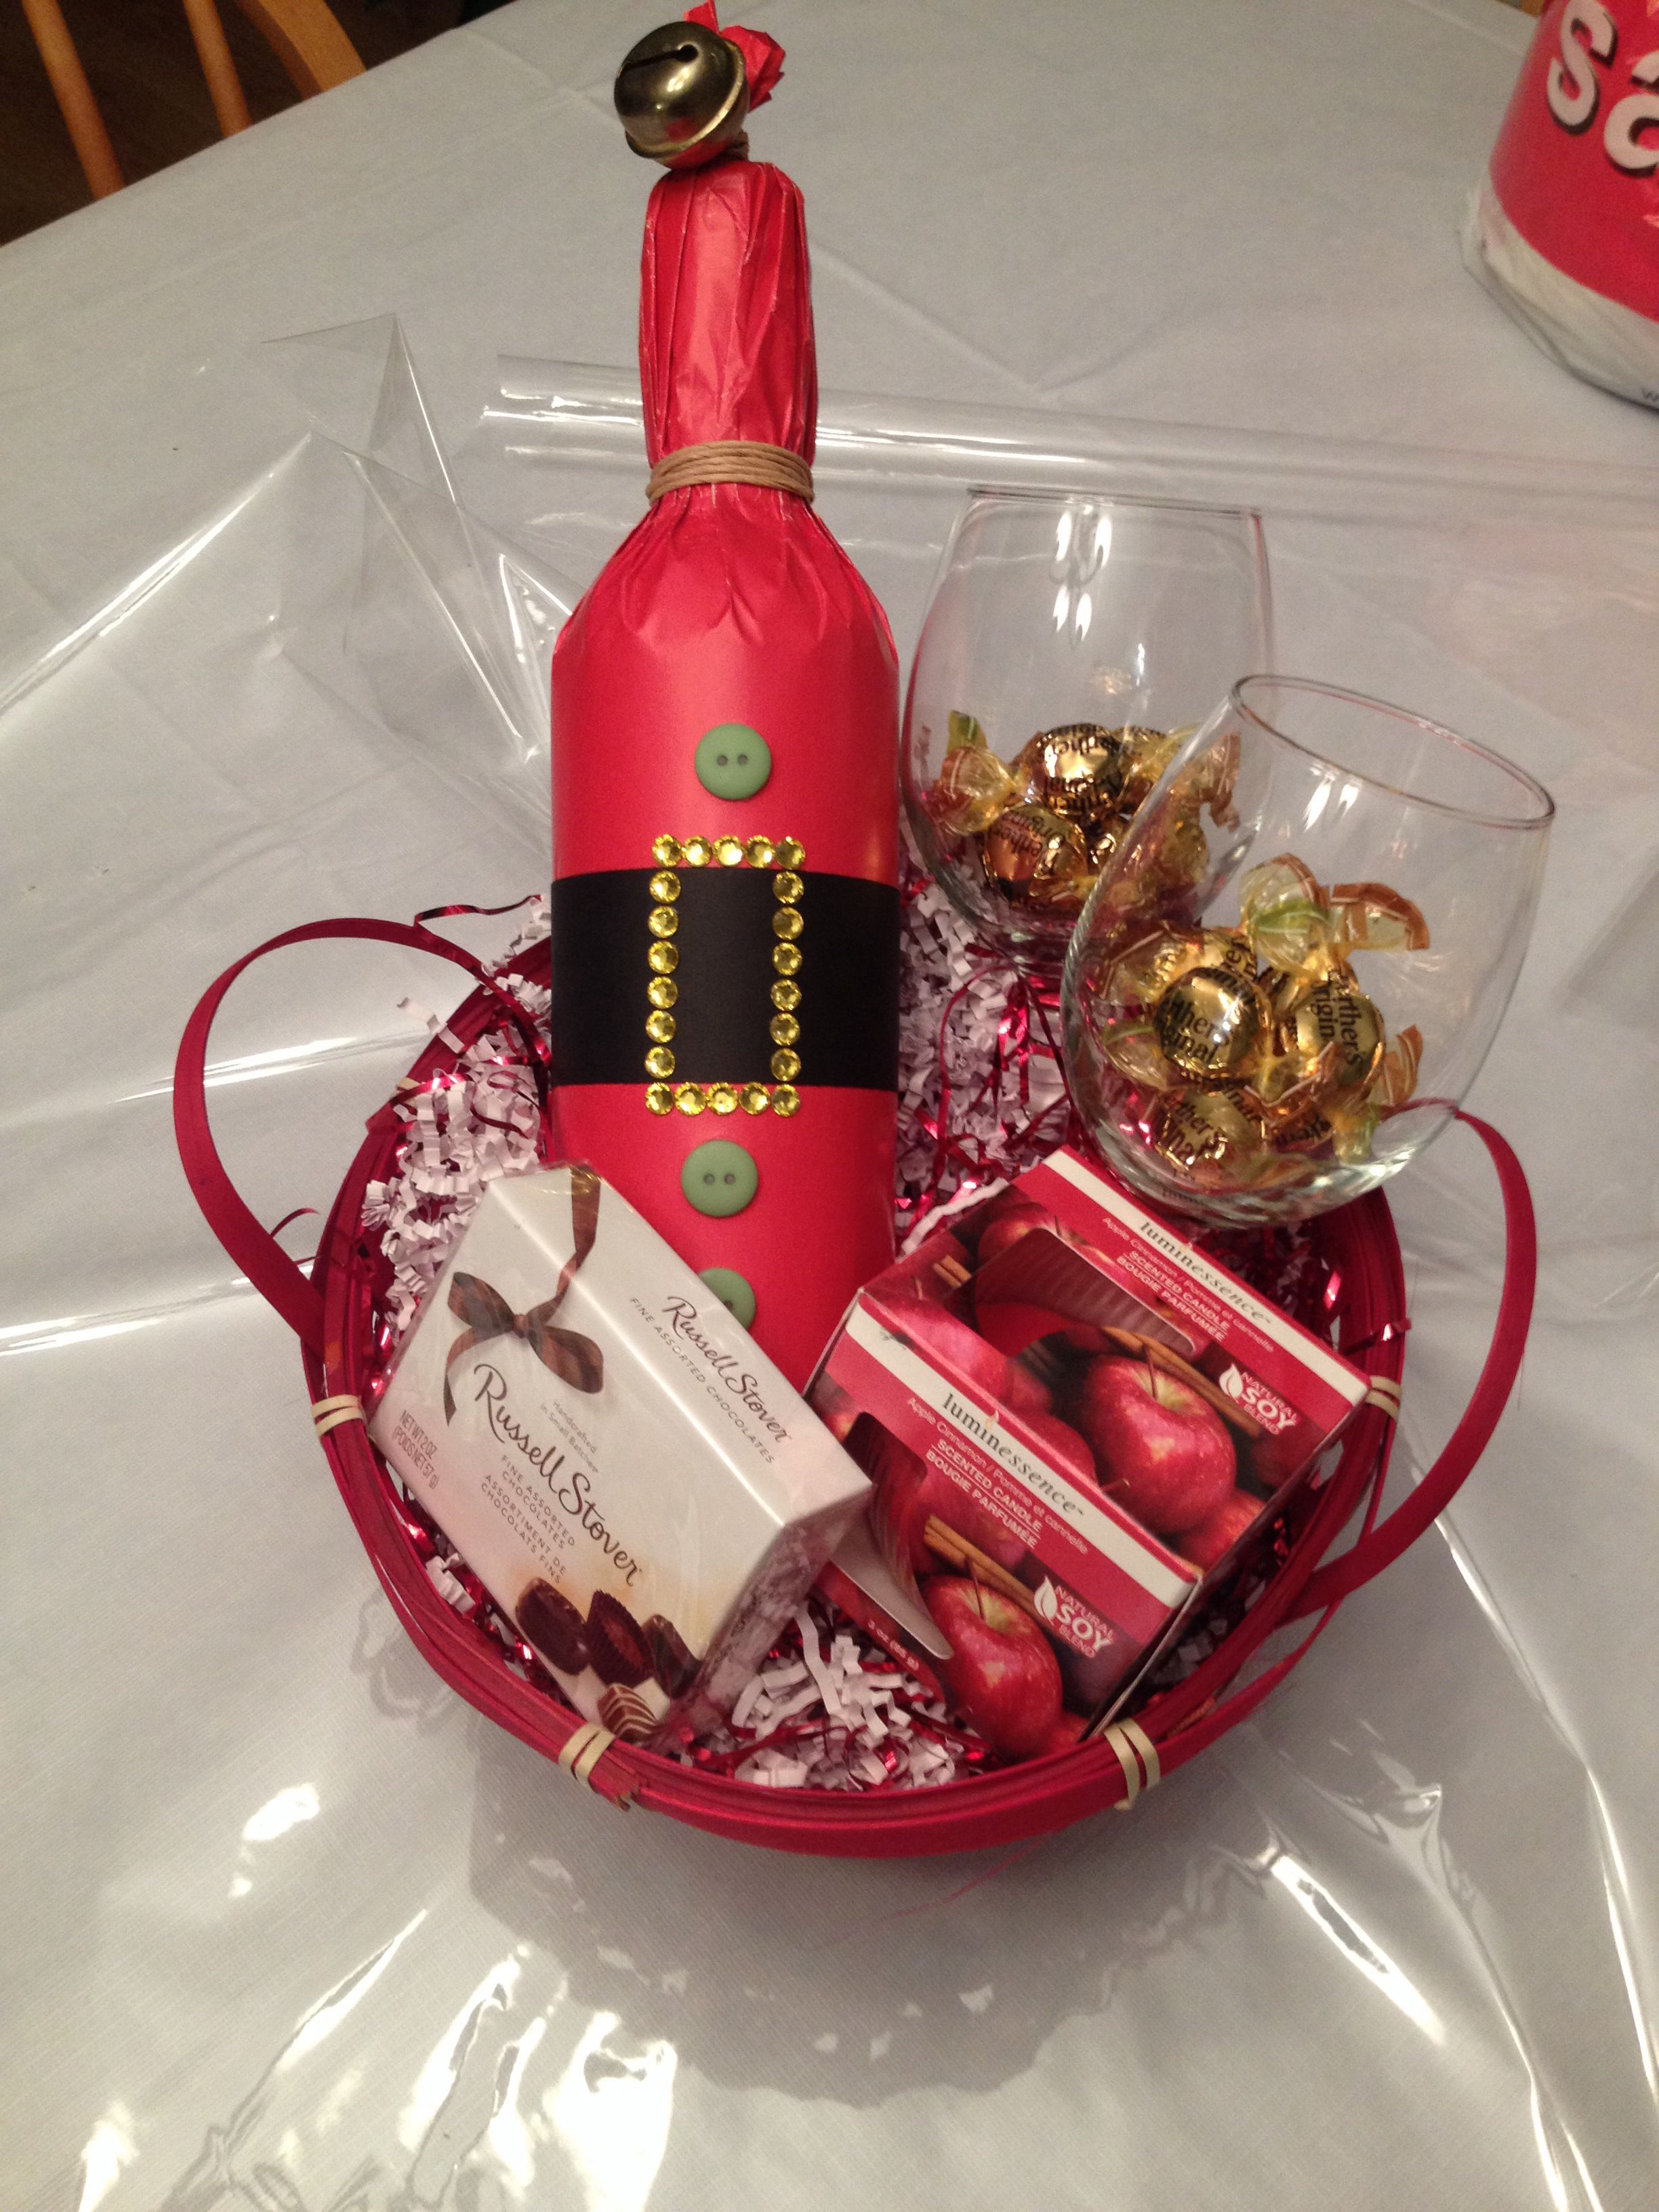 Gift basket for two includes bottle of wine santa wrap